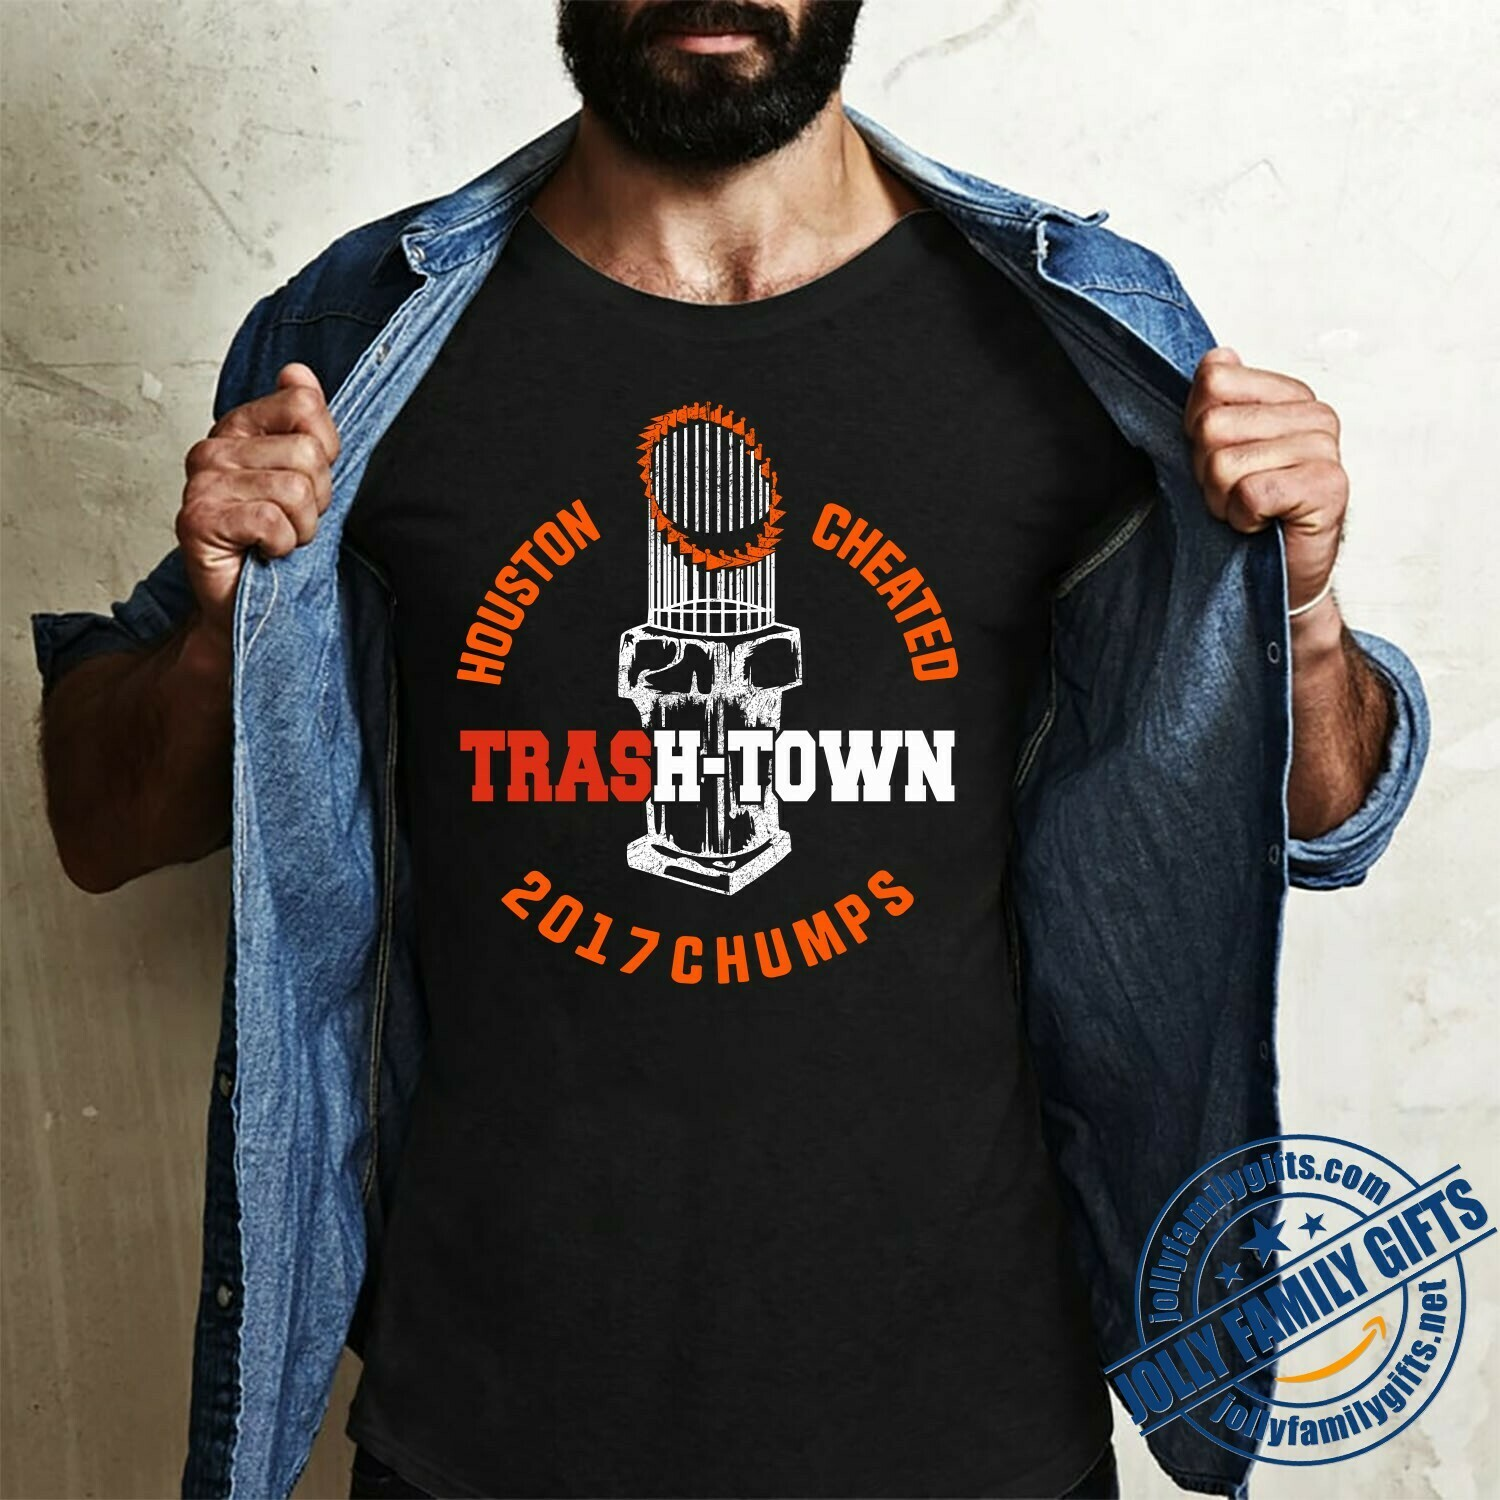 Houston Astros Cheated Trash-Town 2017 Chumps MLB Baseball stealing signs Cheating scandal for Men Women Unisex T-Shirt Hoodie Sweatshirt Sweater Plus Size for Ladies Women Men Kids Youth Gifts Tee